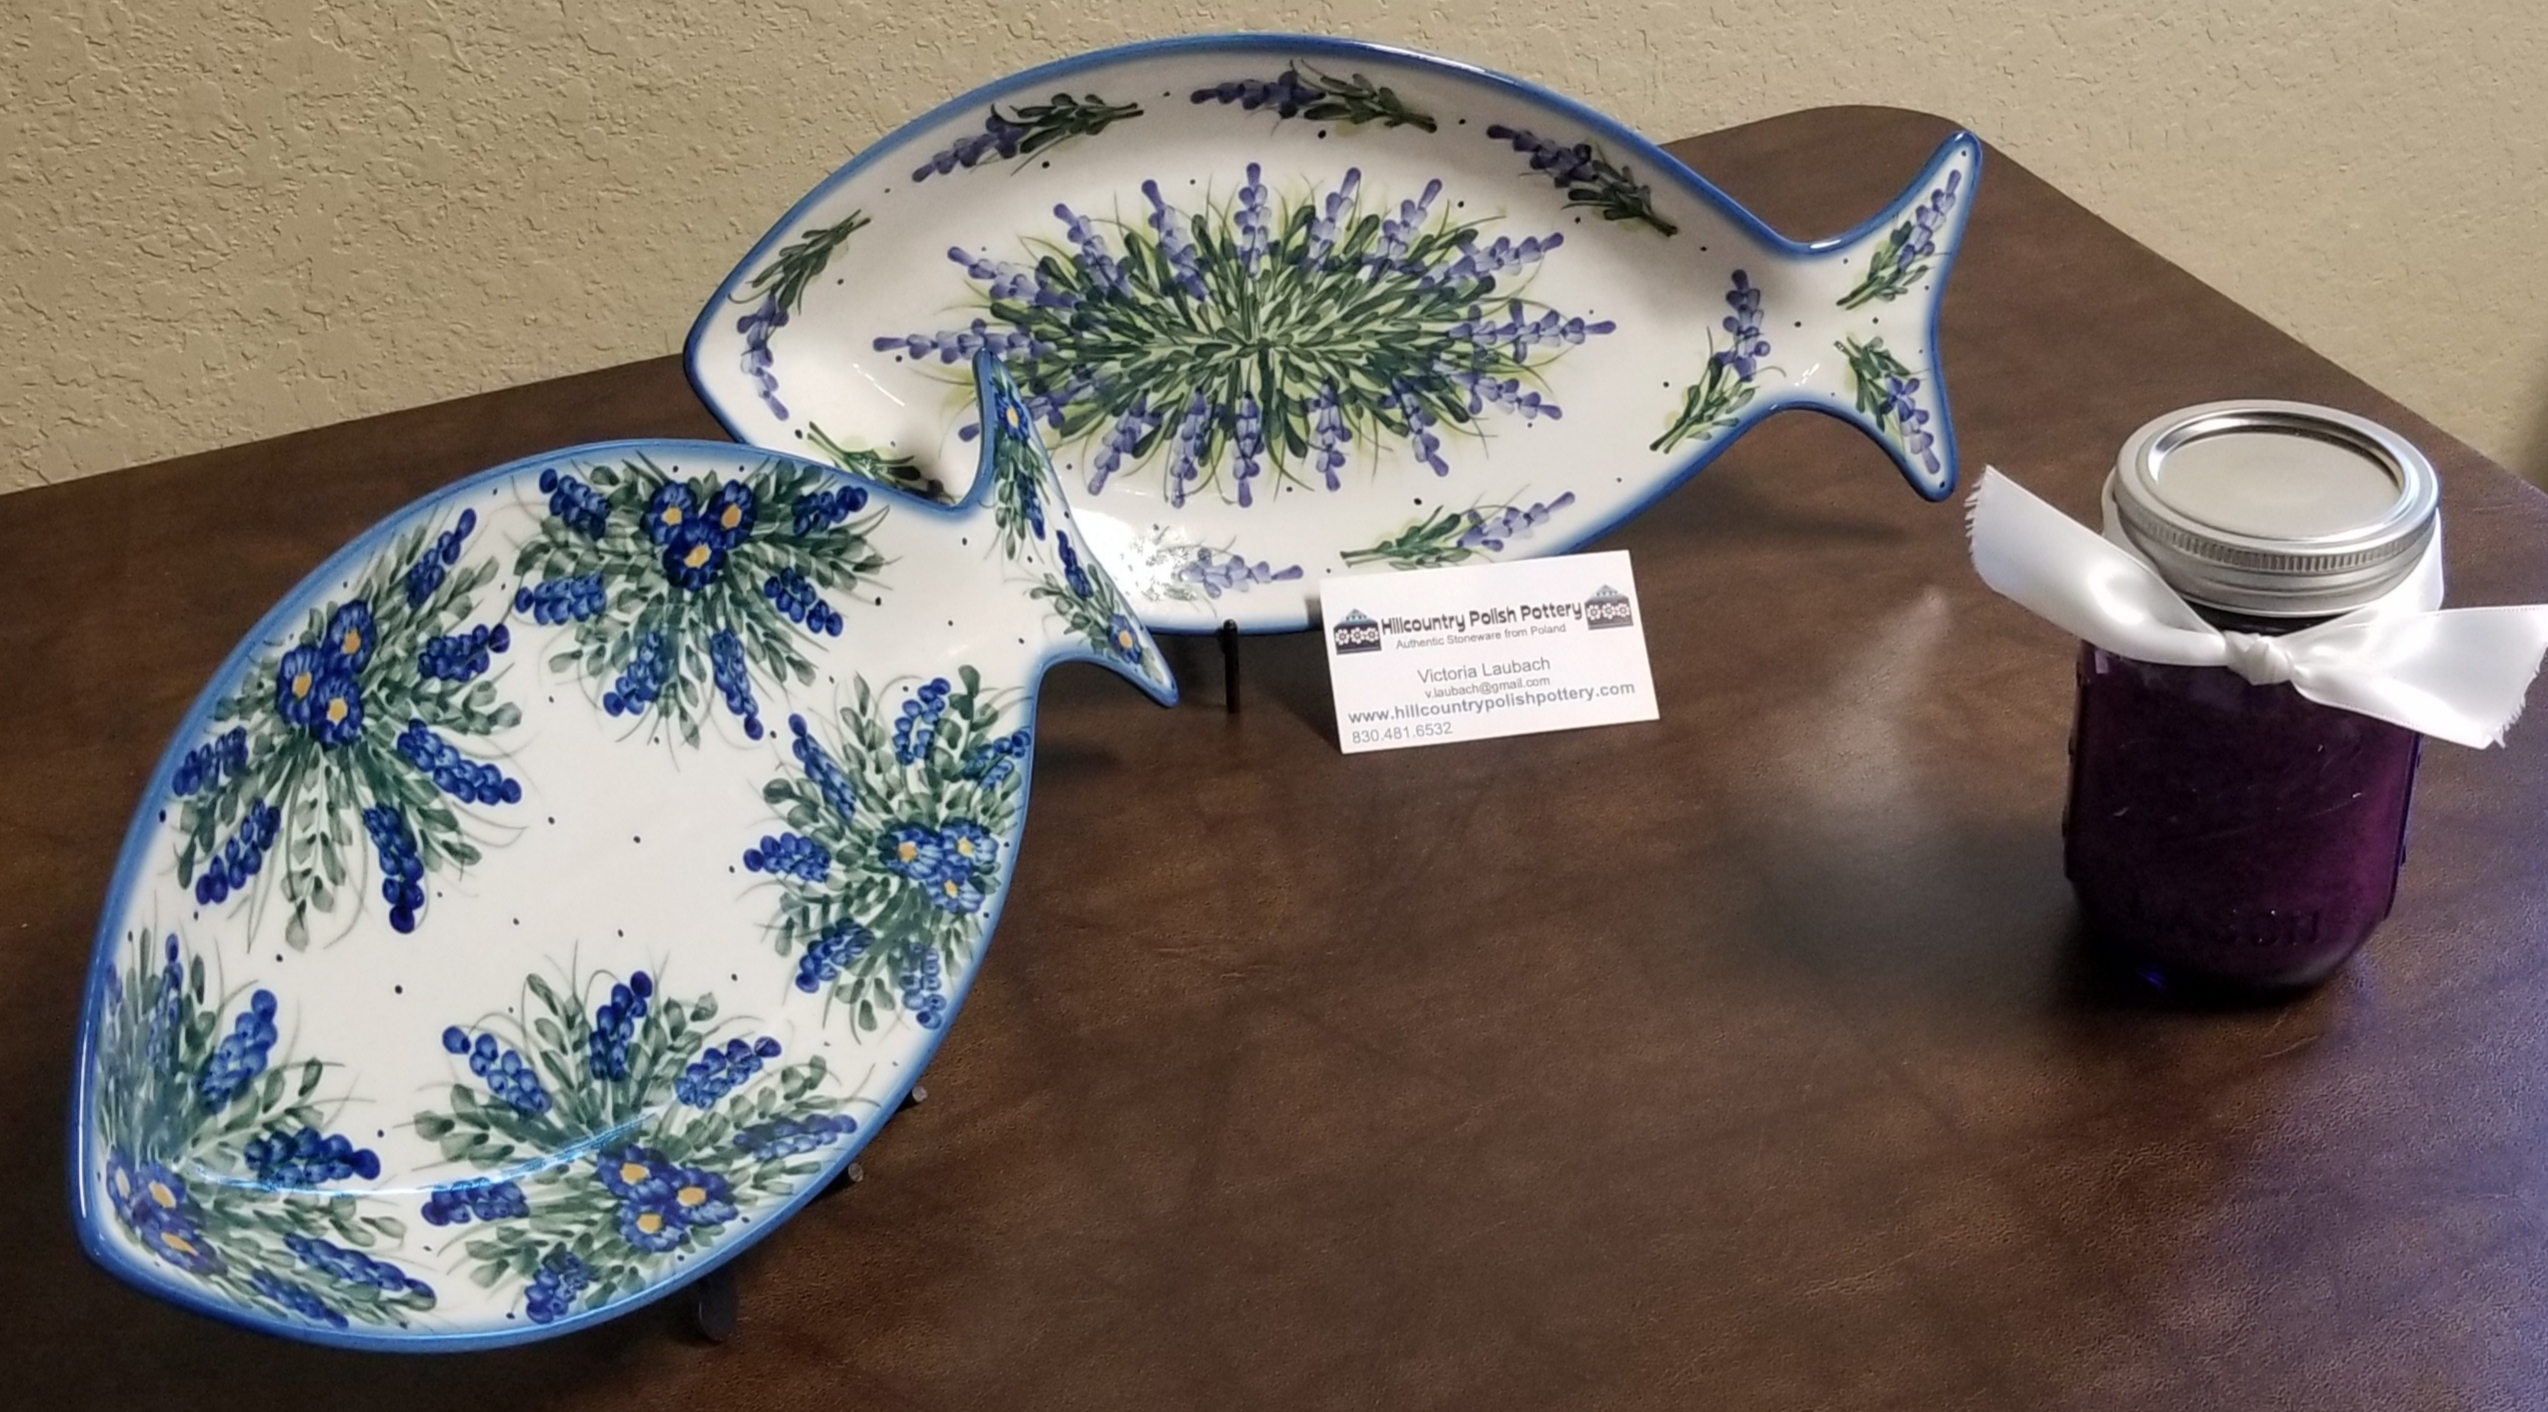 Online Secret Auction Item 2: Catch of the Day Polish pottery fish platters (2), Milann's Adobo seasoning.